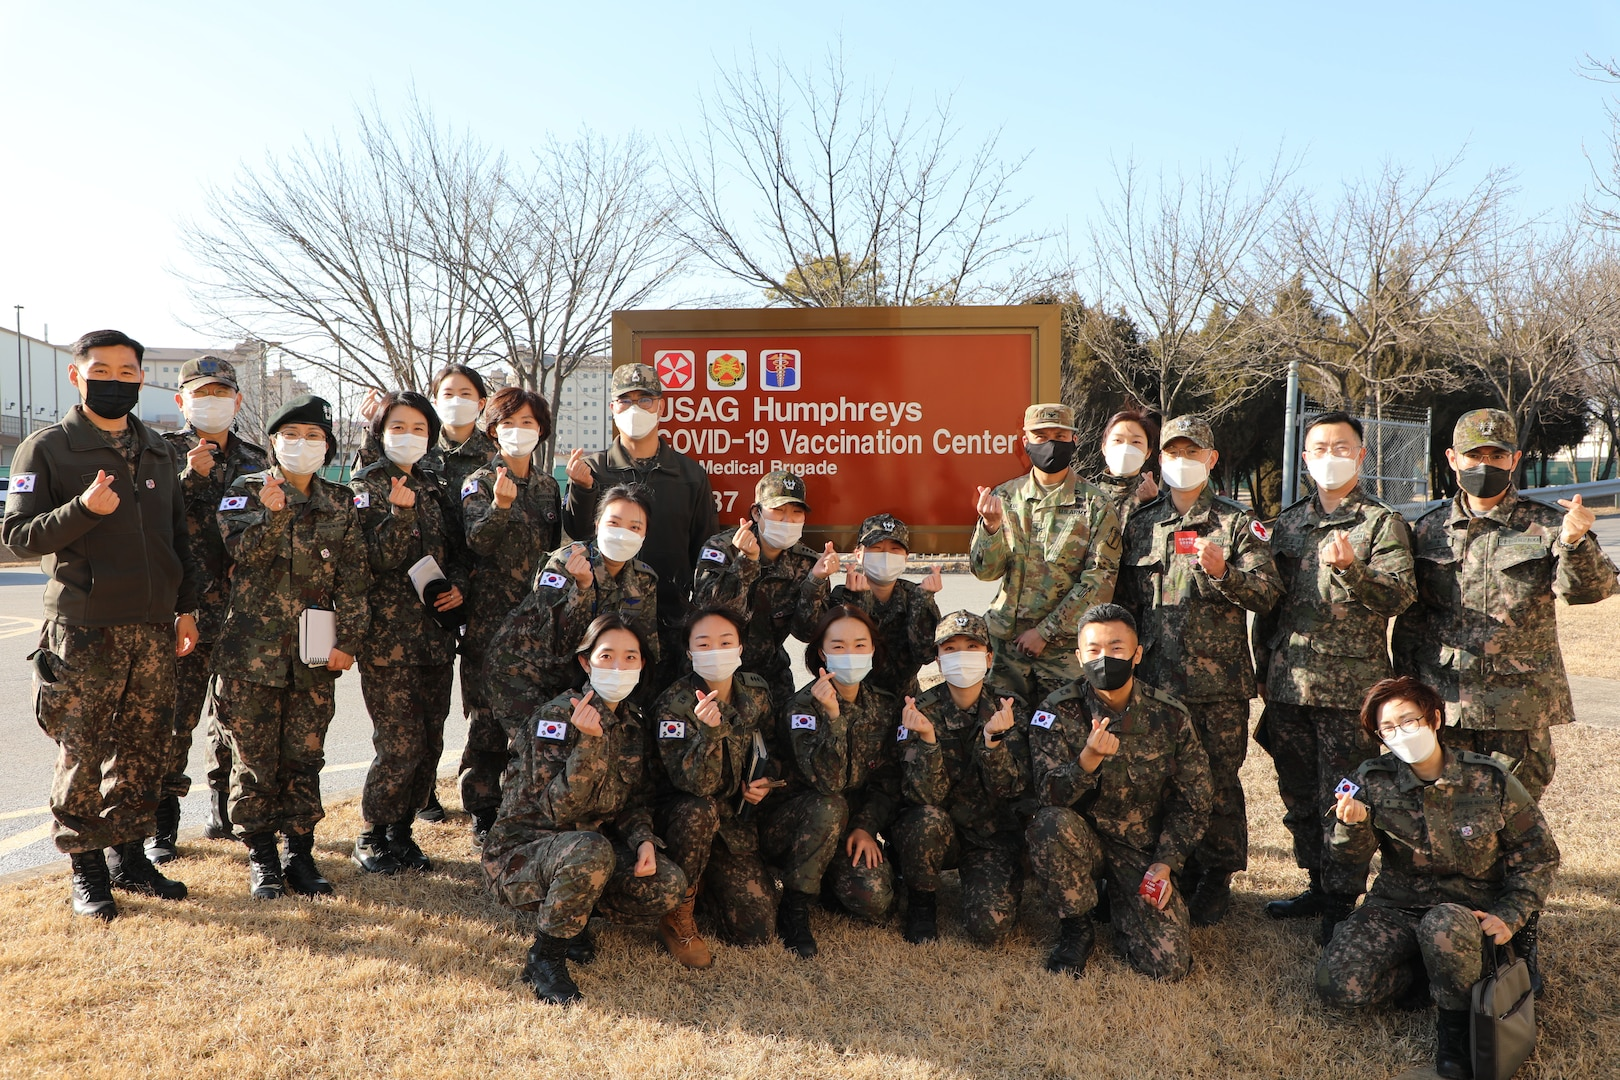 U.S. Army, South Korea Alliance Strengthens During COVID-19 Vaccine Operations